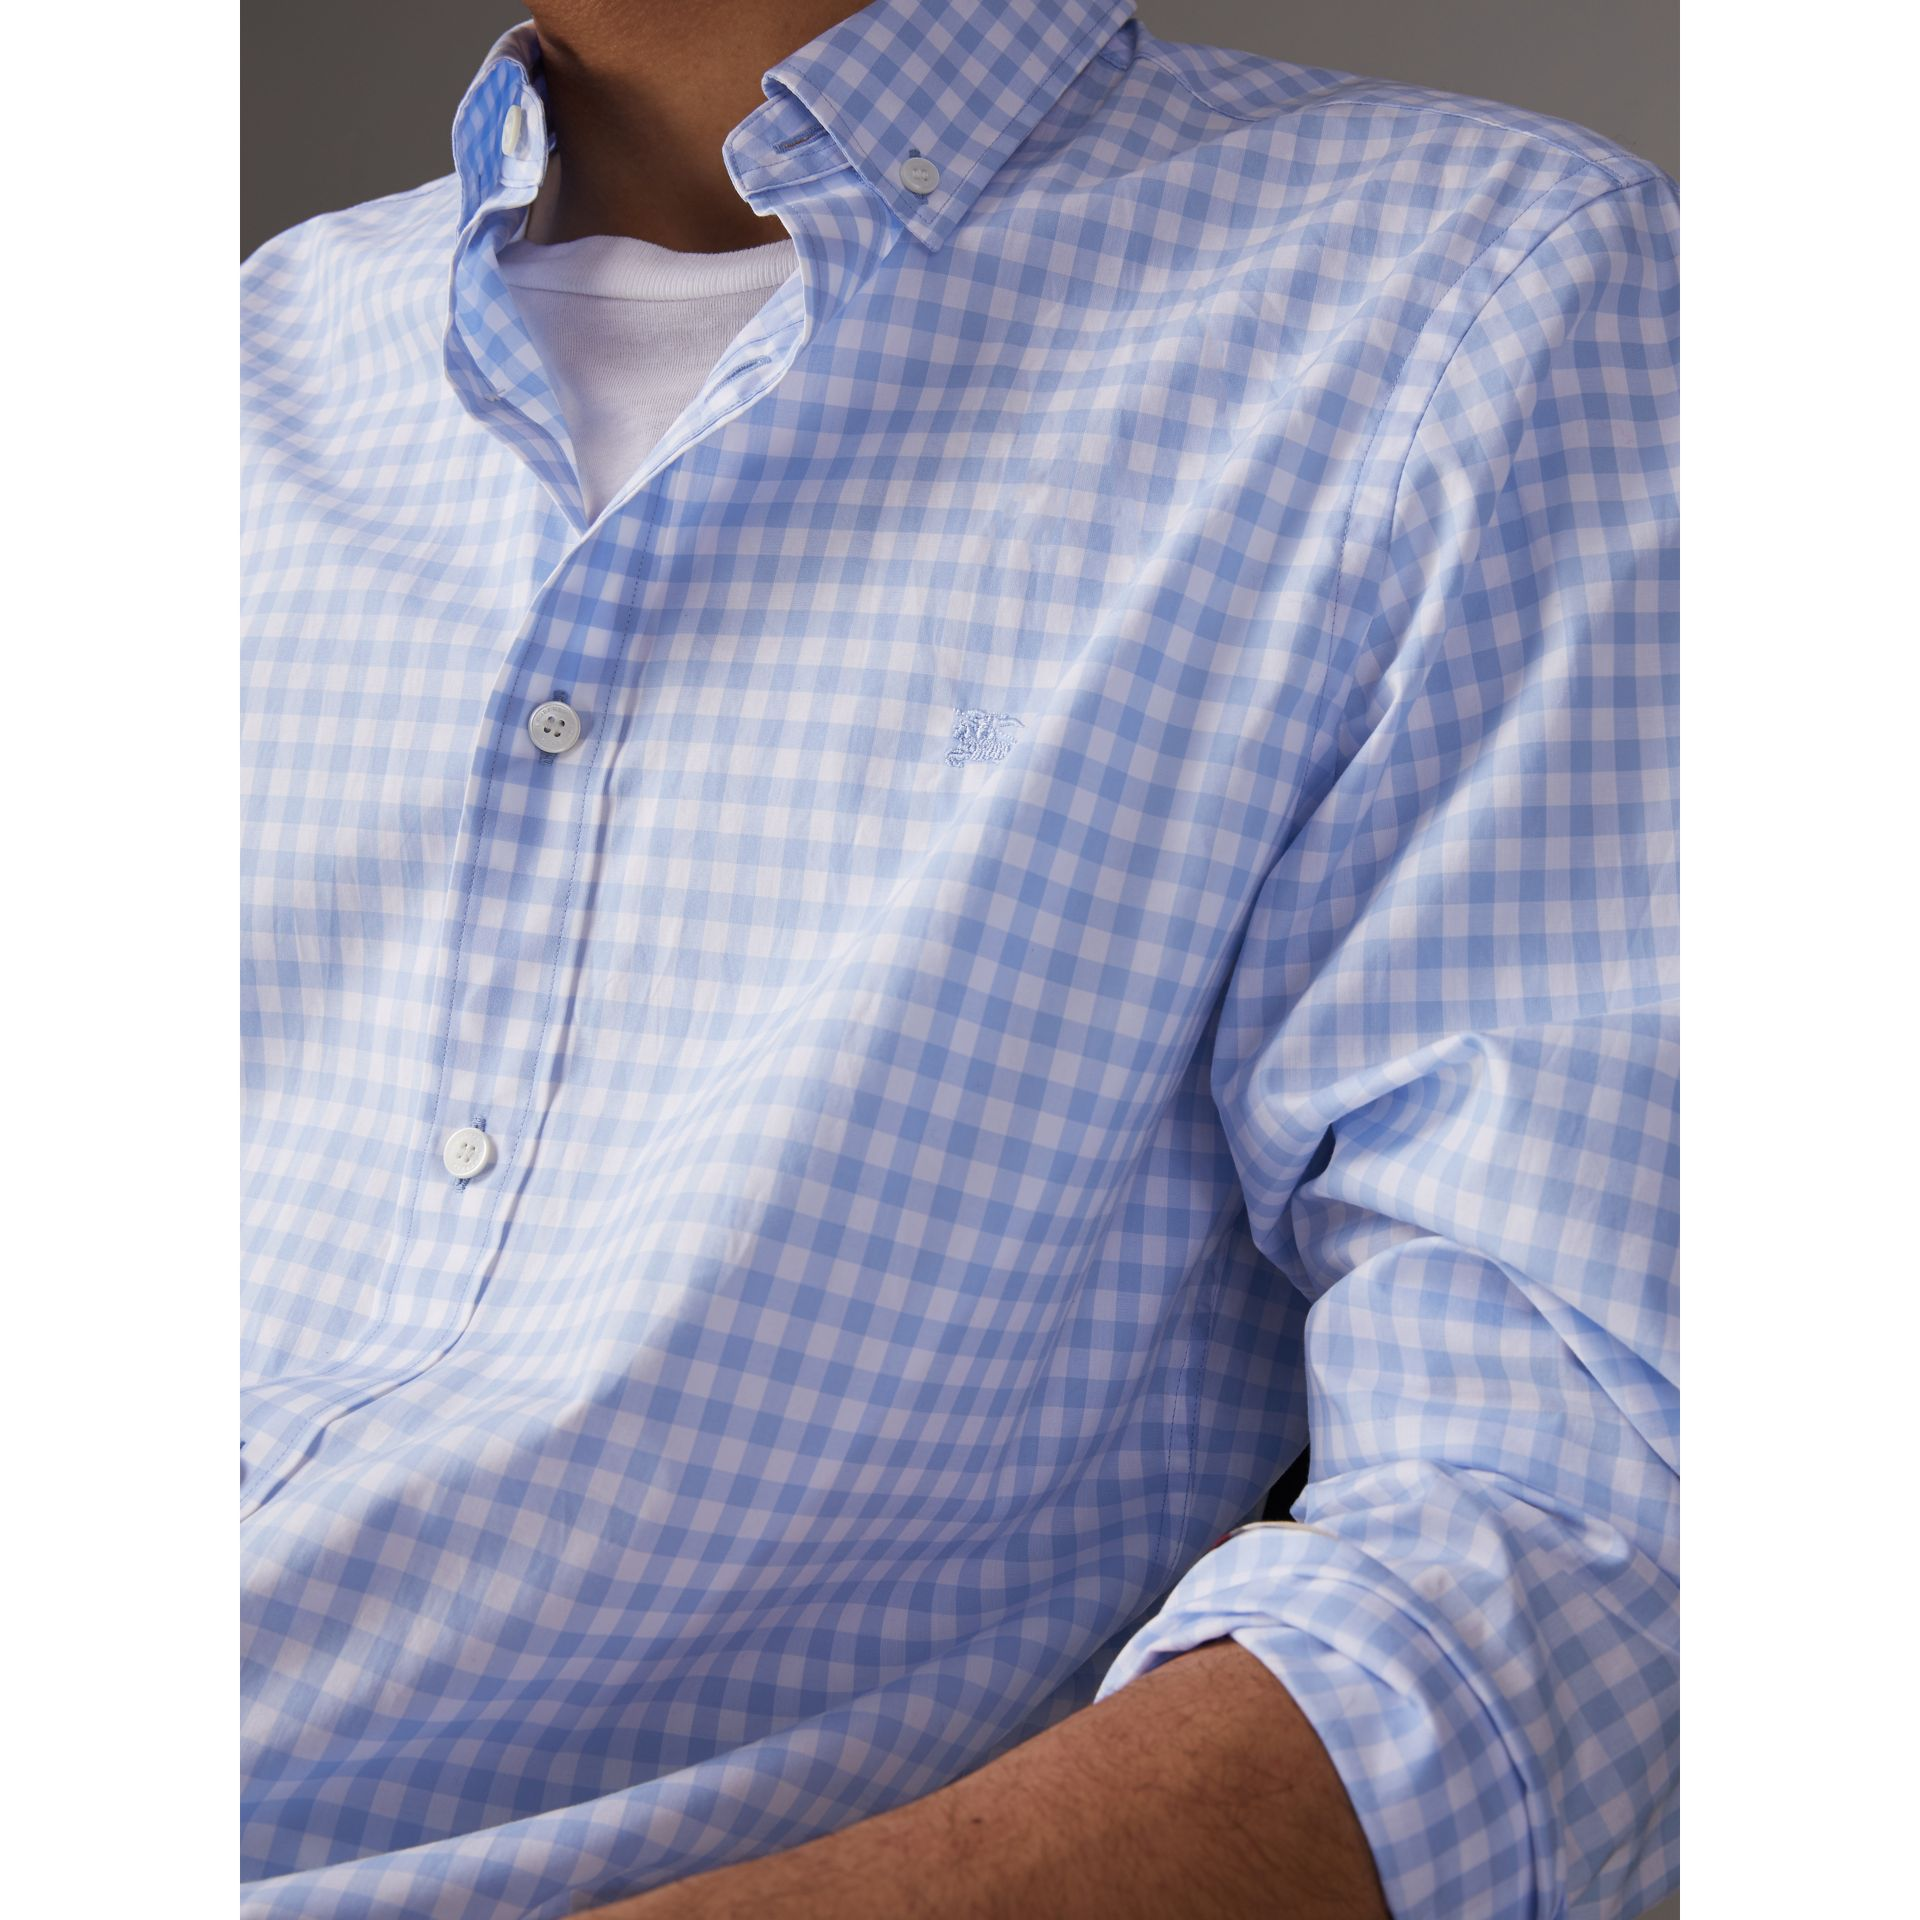 Button-down Collar Gingham Cotton Shirt in Pale Blue - Men | Burberry United Kingdom - gallery image 1